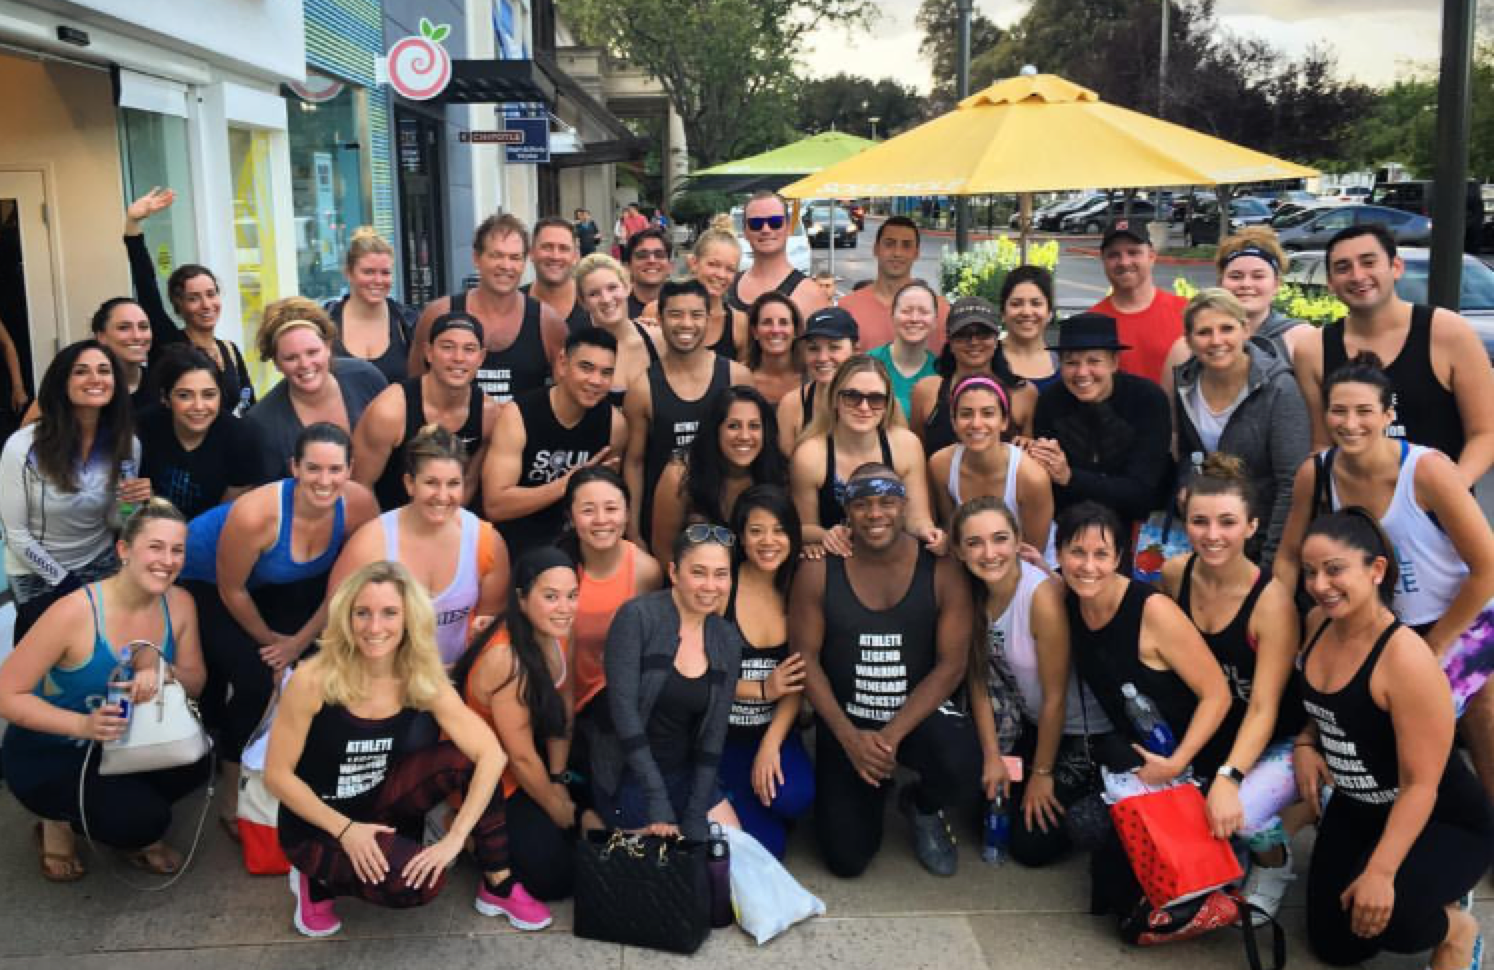 SoulCycle soulmates pictured with instructor Kamelle in front of the Stanford SoulCycle studio.